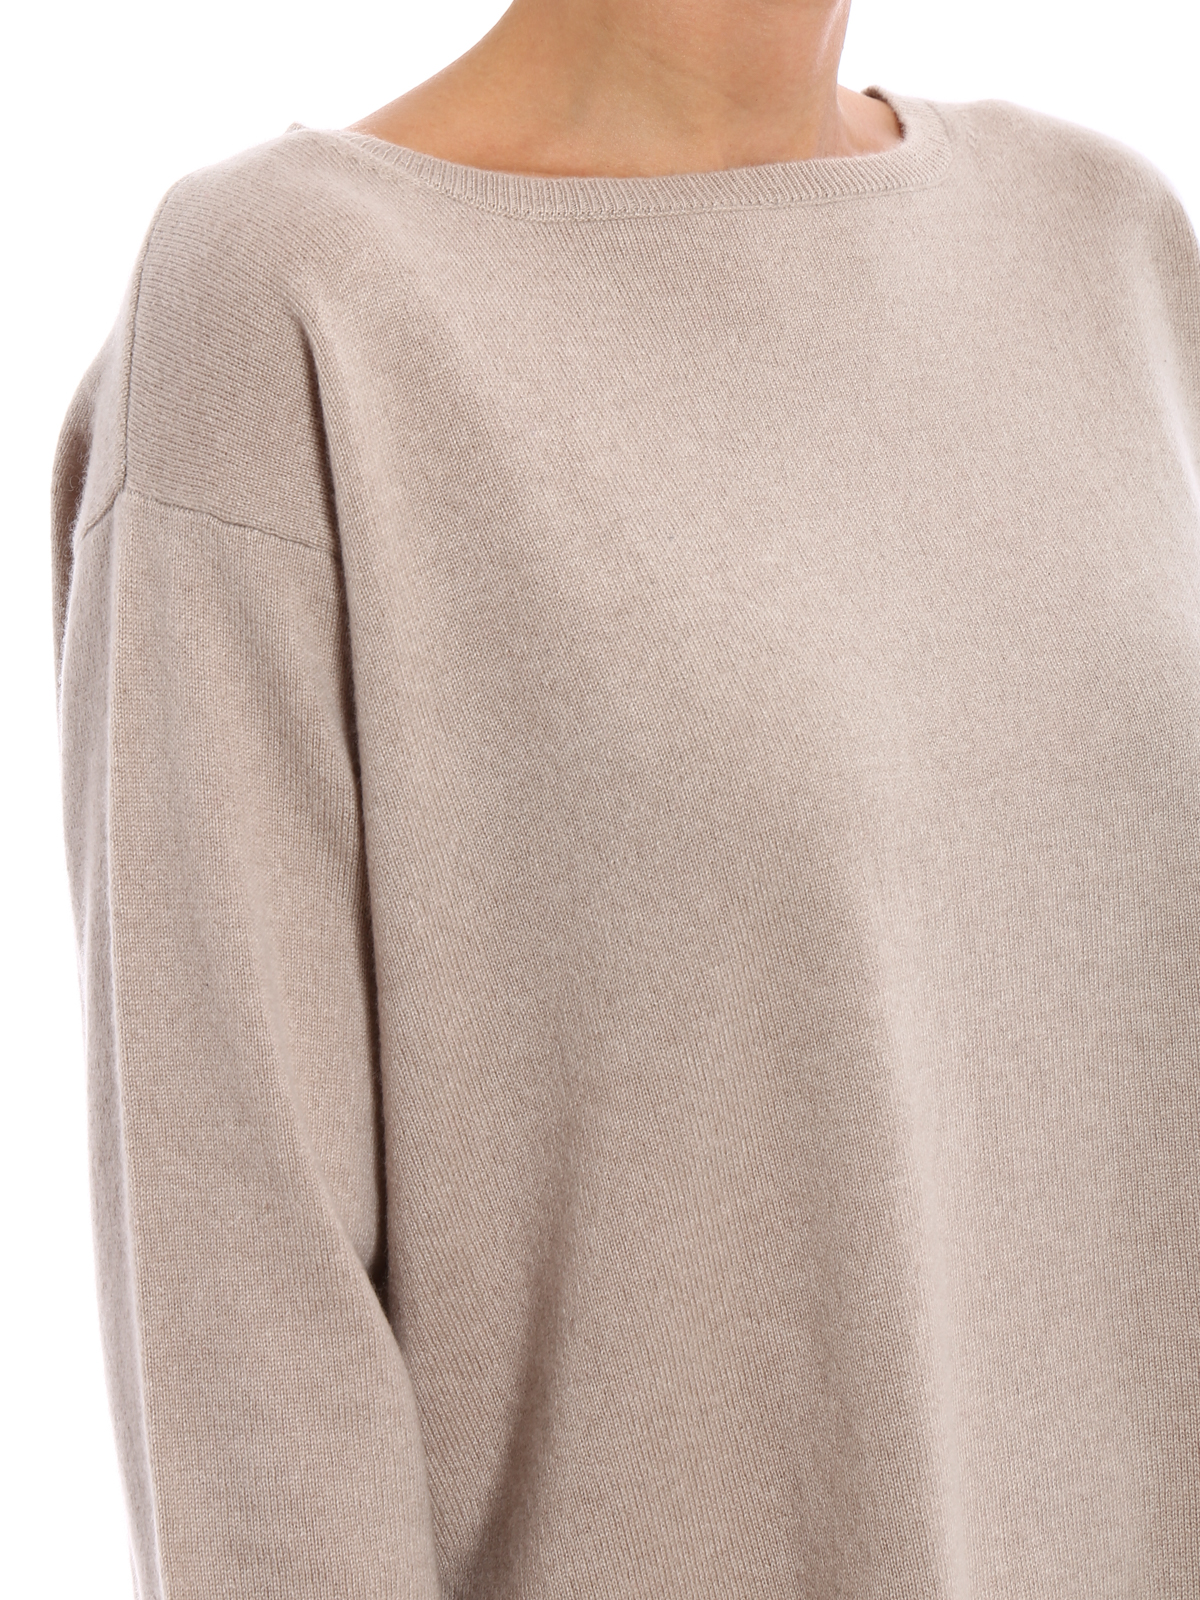 Relaxed boat neck cashmere sweater by Aspesi - boat necks | iKRIX